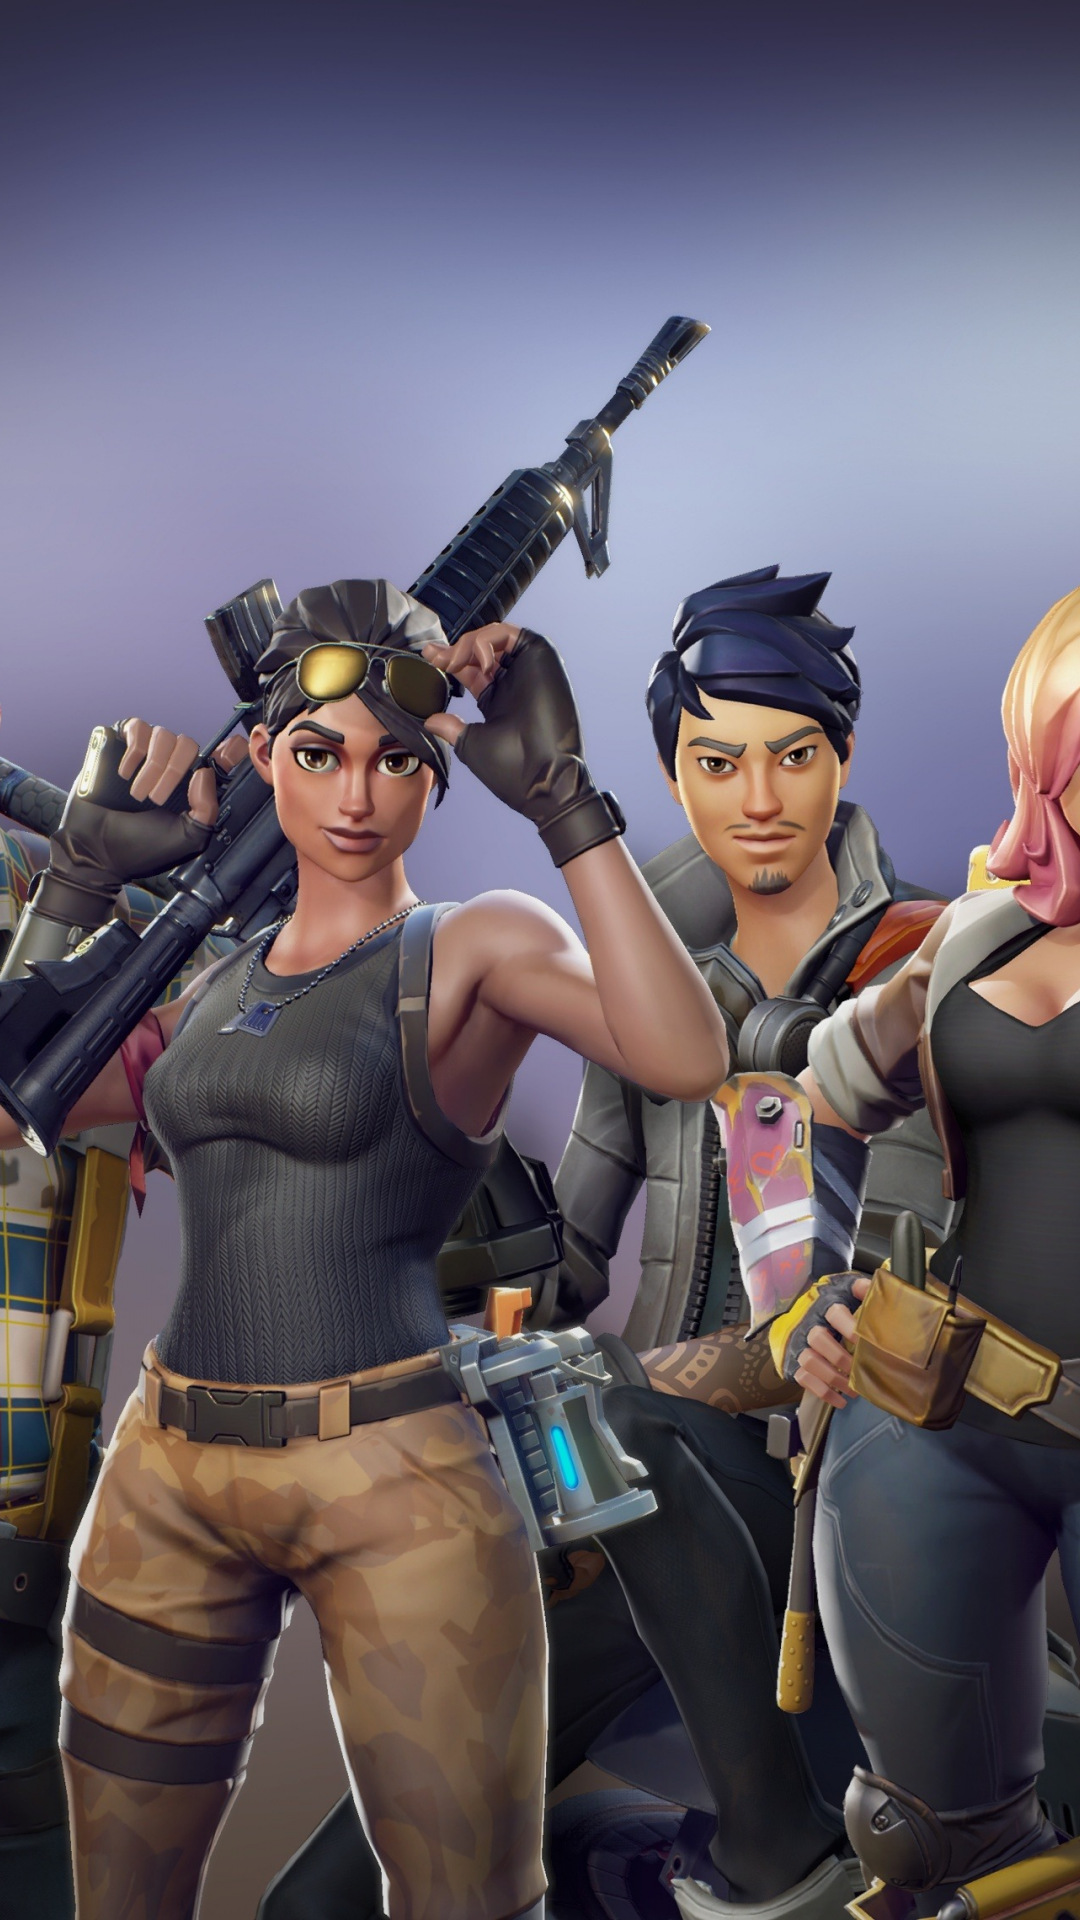 Fortnite heroes - Download 4k wallpapers for iPhone and ...